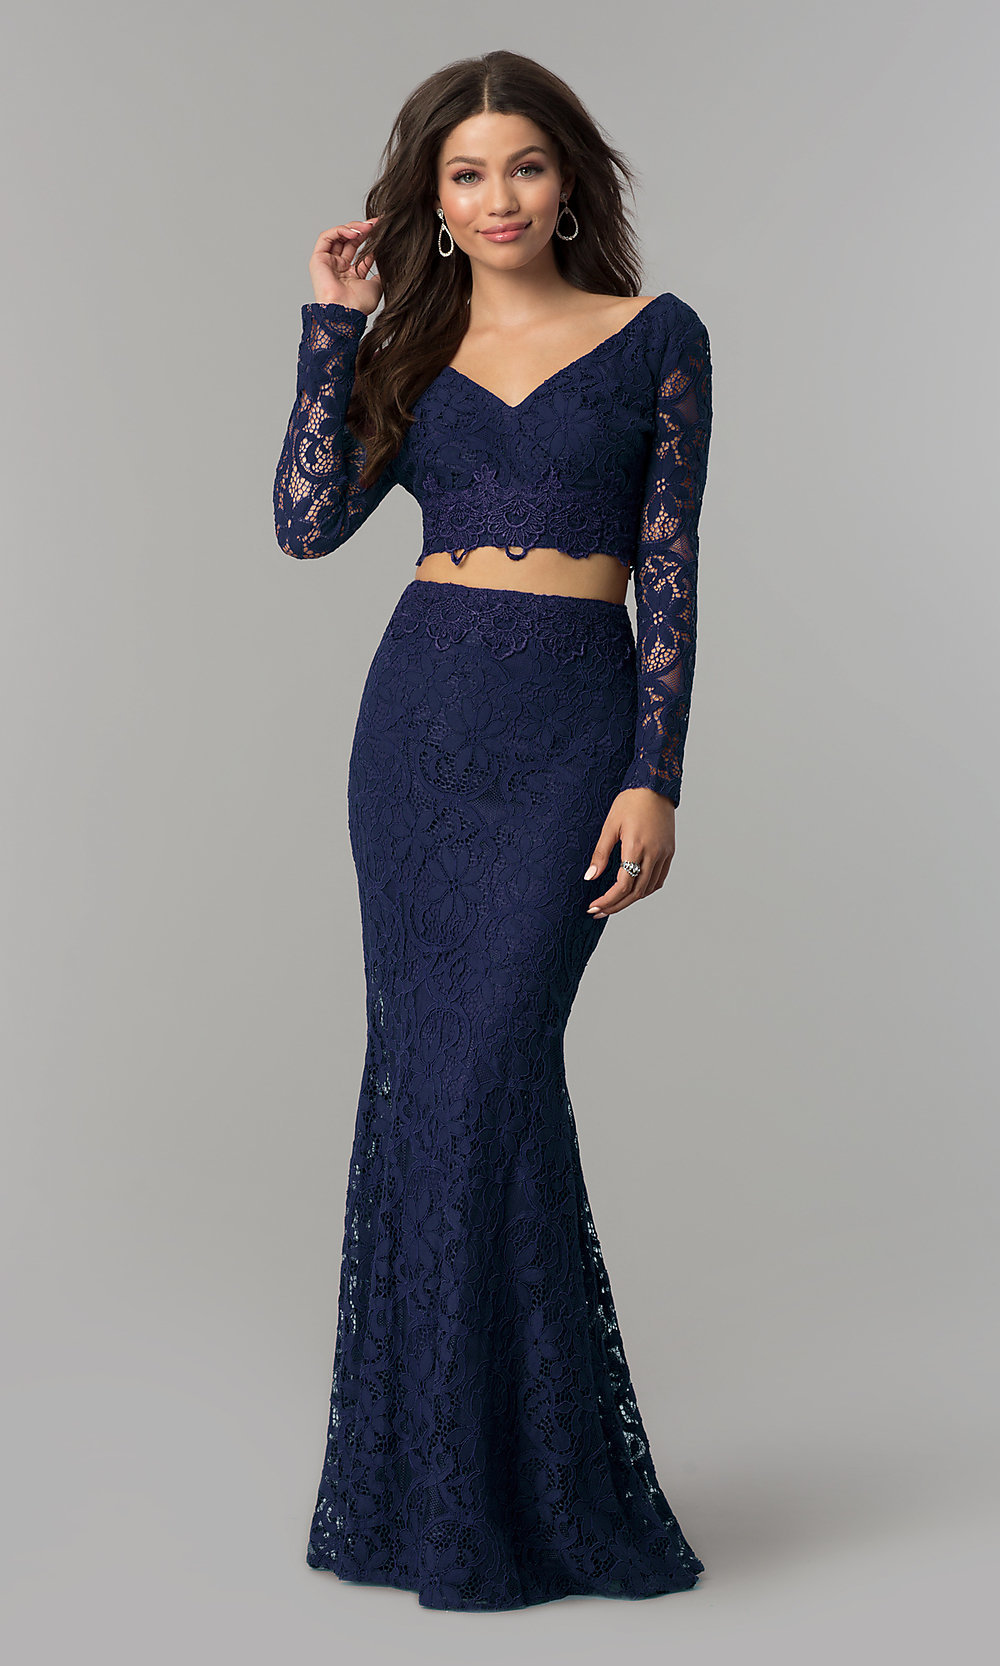 V-Neck Sleeved Two-Piece Long Prom Dress - PromGirl